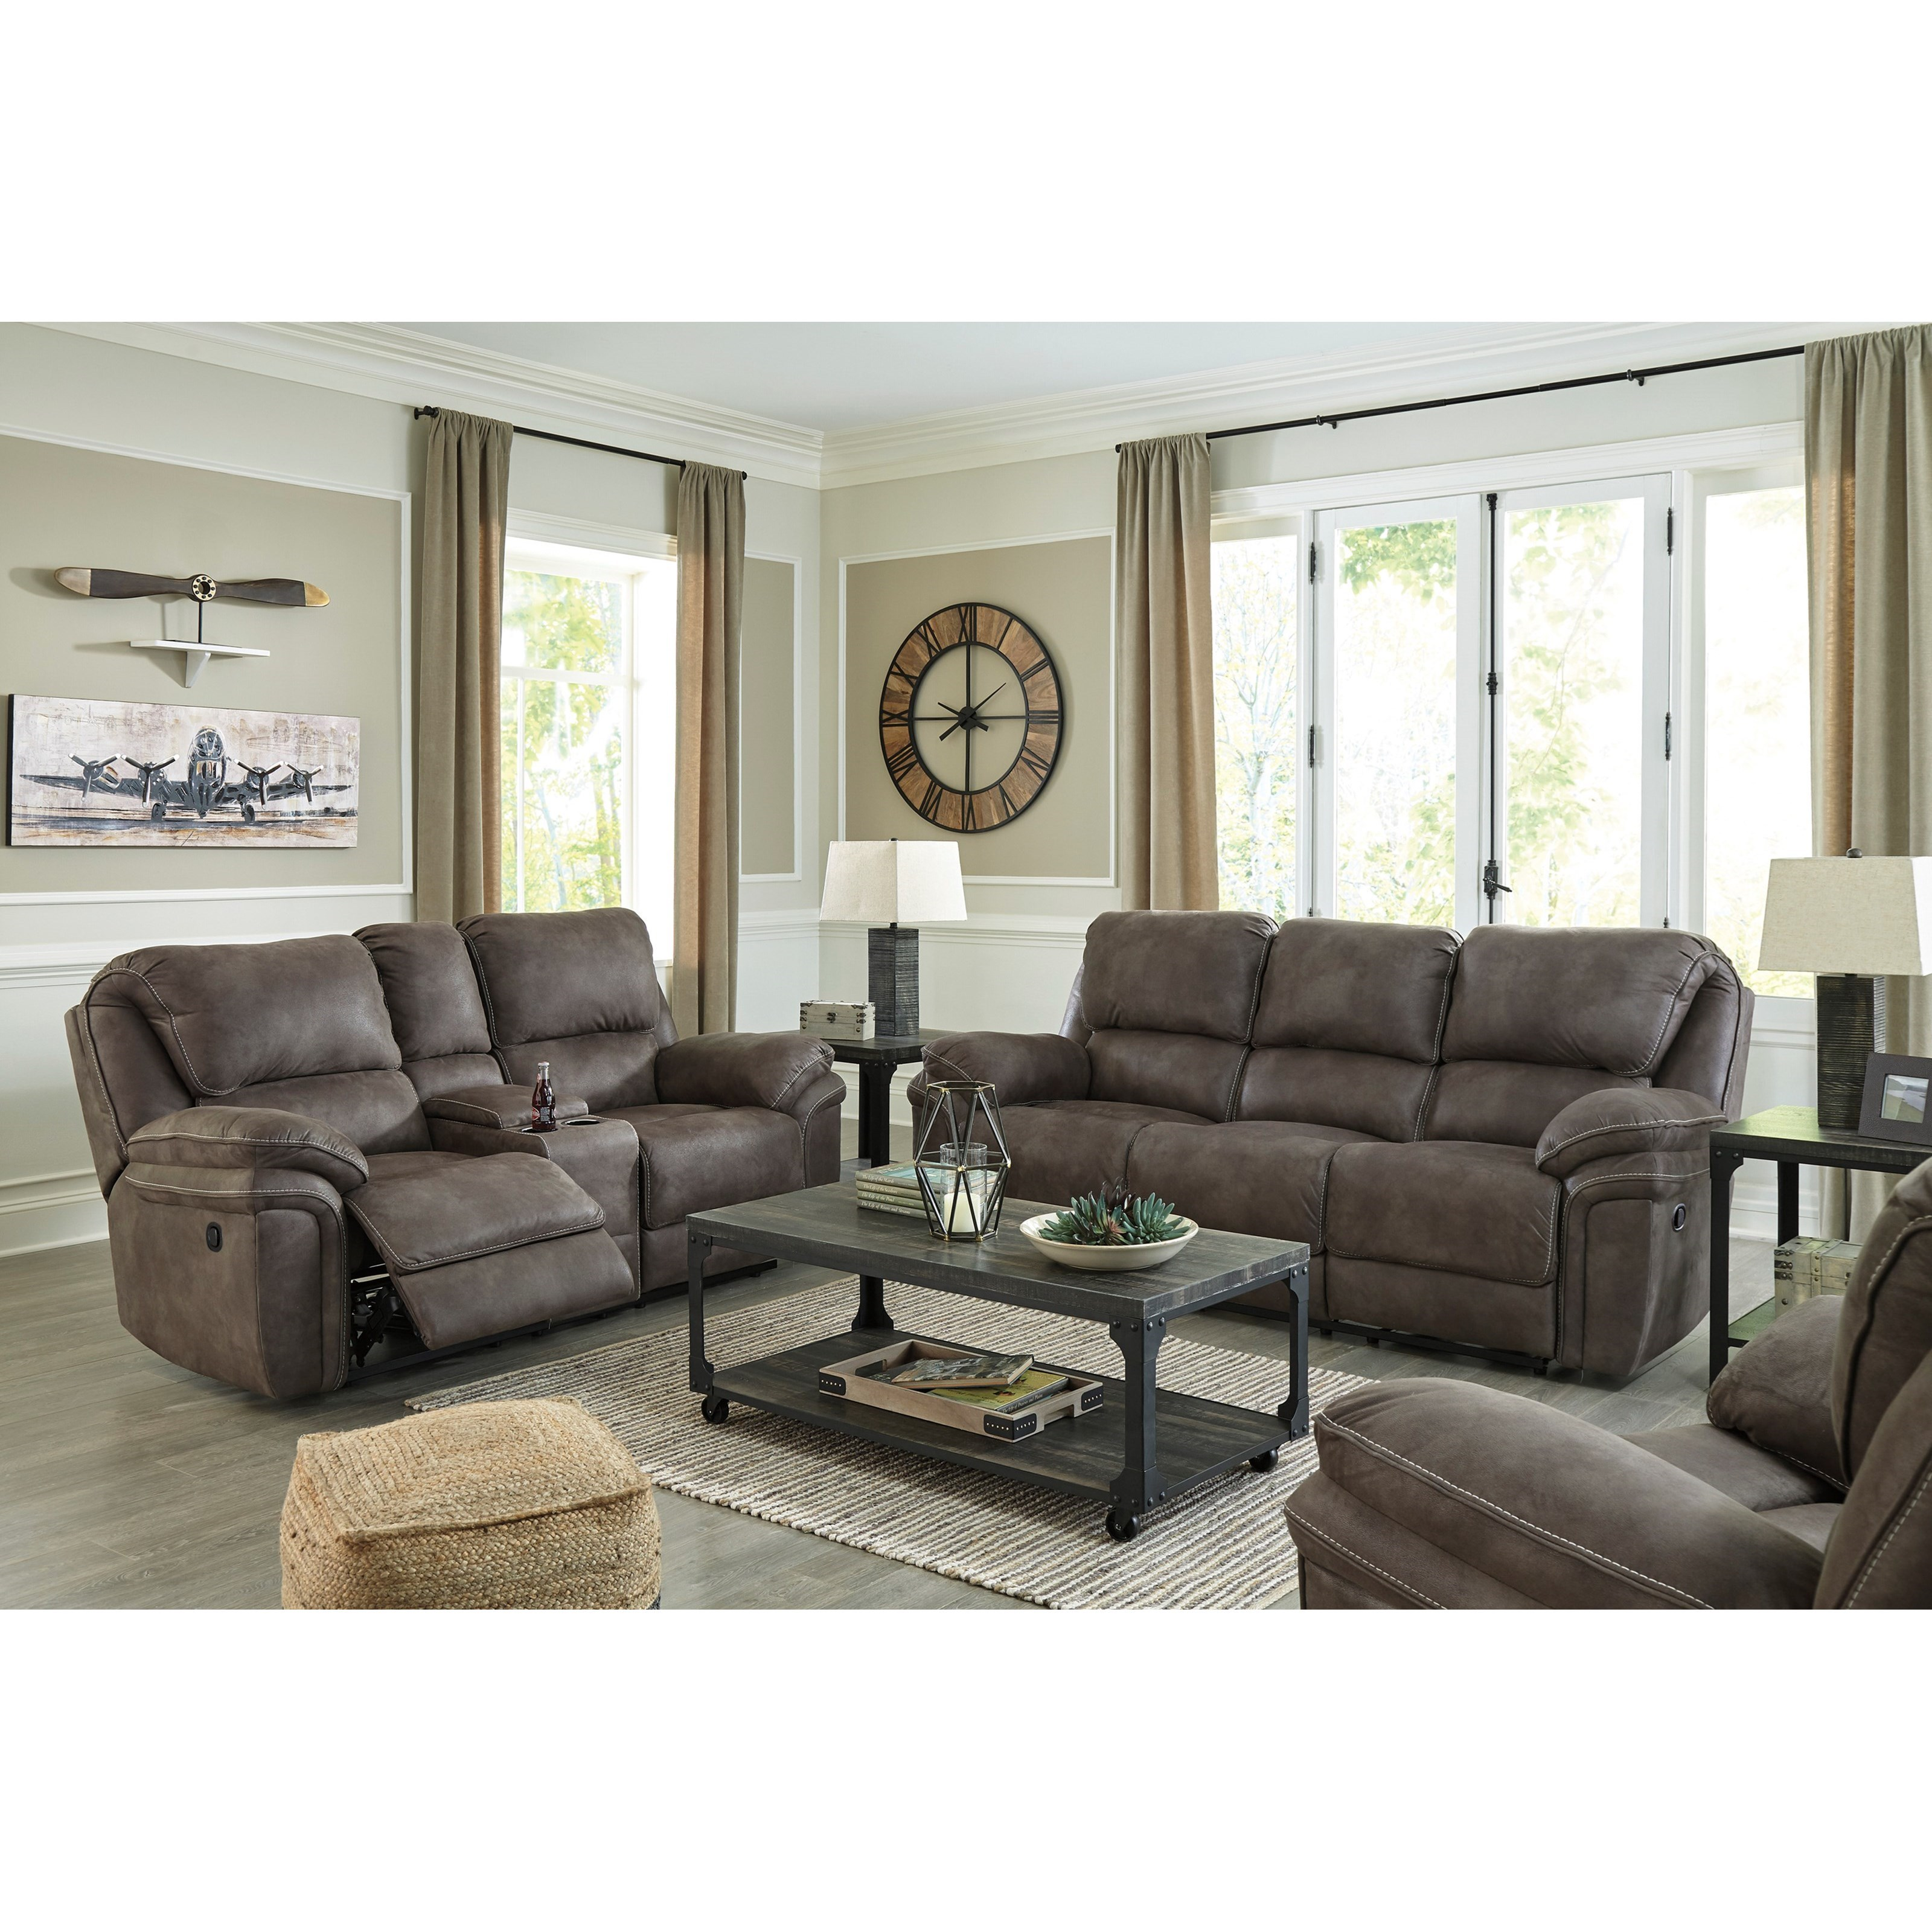 Trementon Reclining Living Room Group by Benchcraft at Standard Furniture